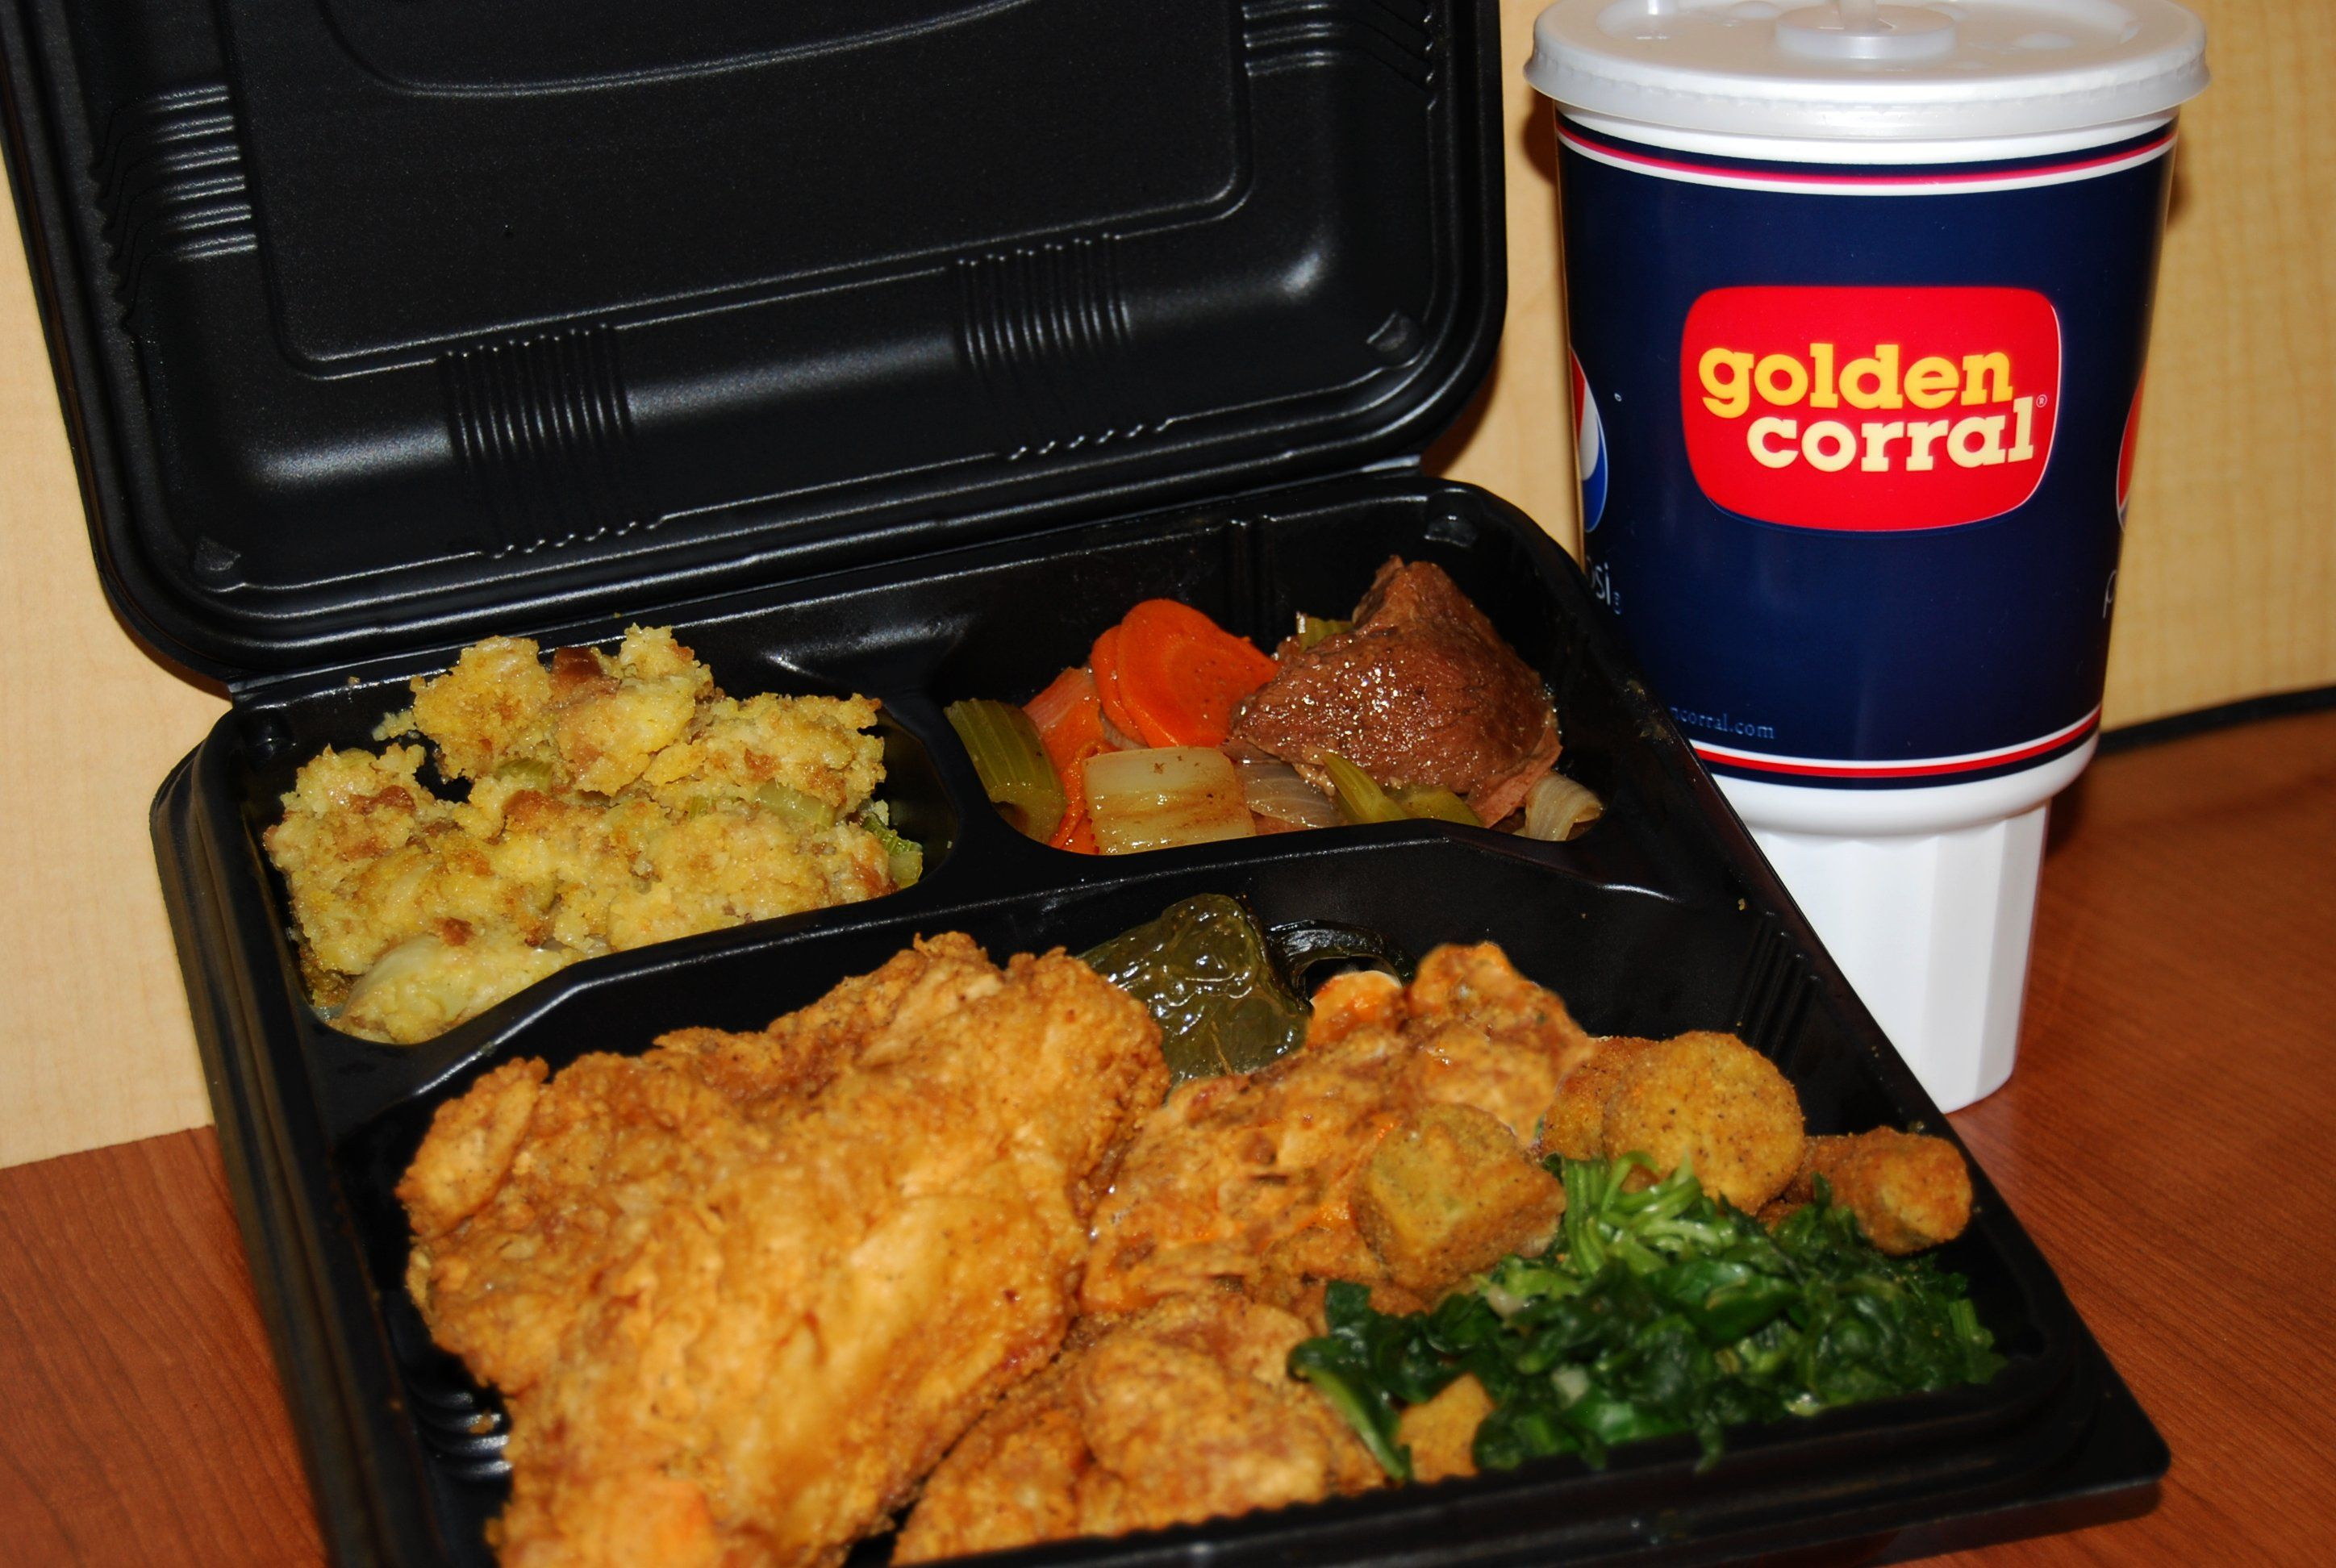 golden corral golden corral restaurants step up the take